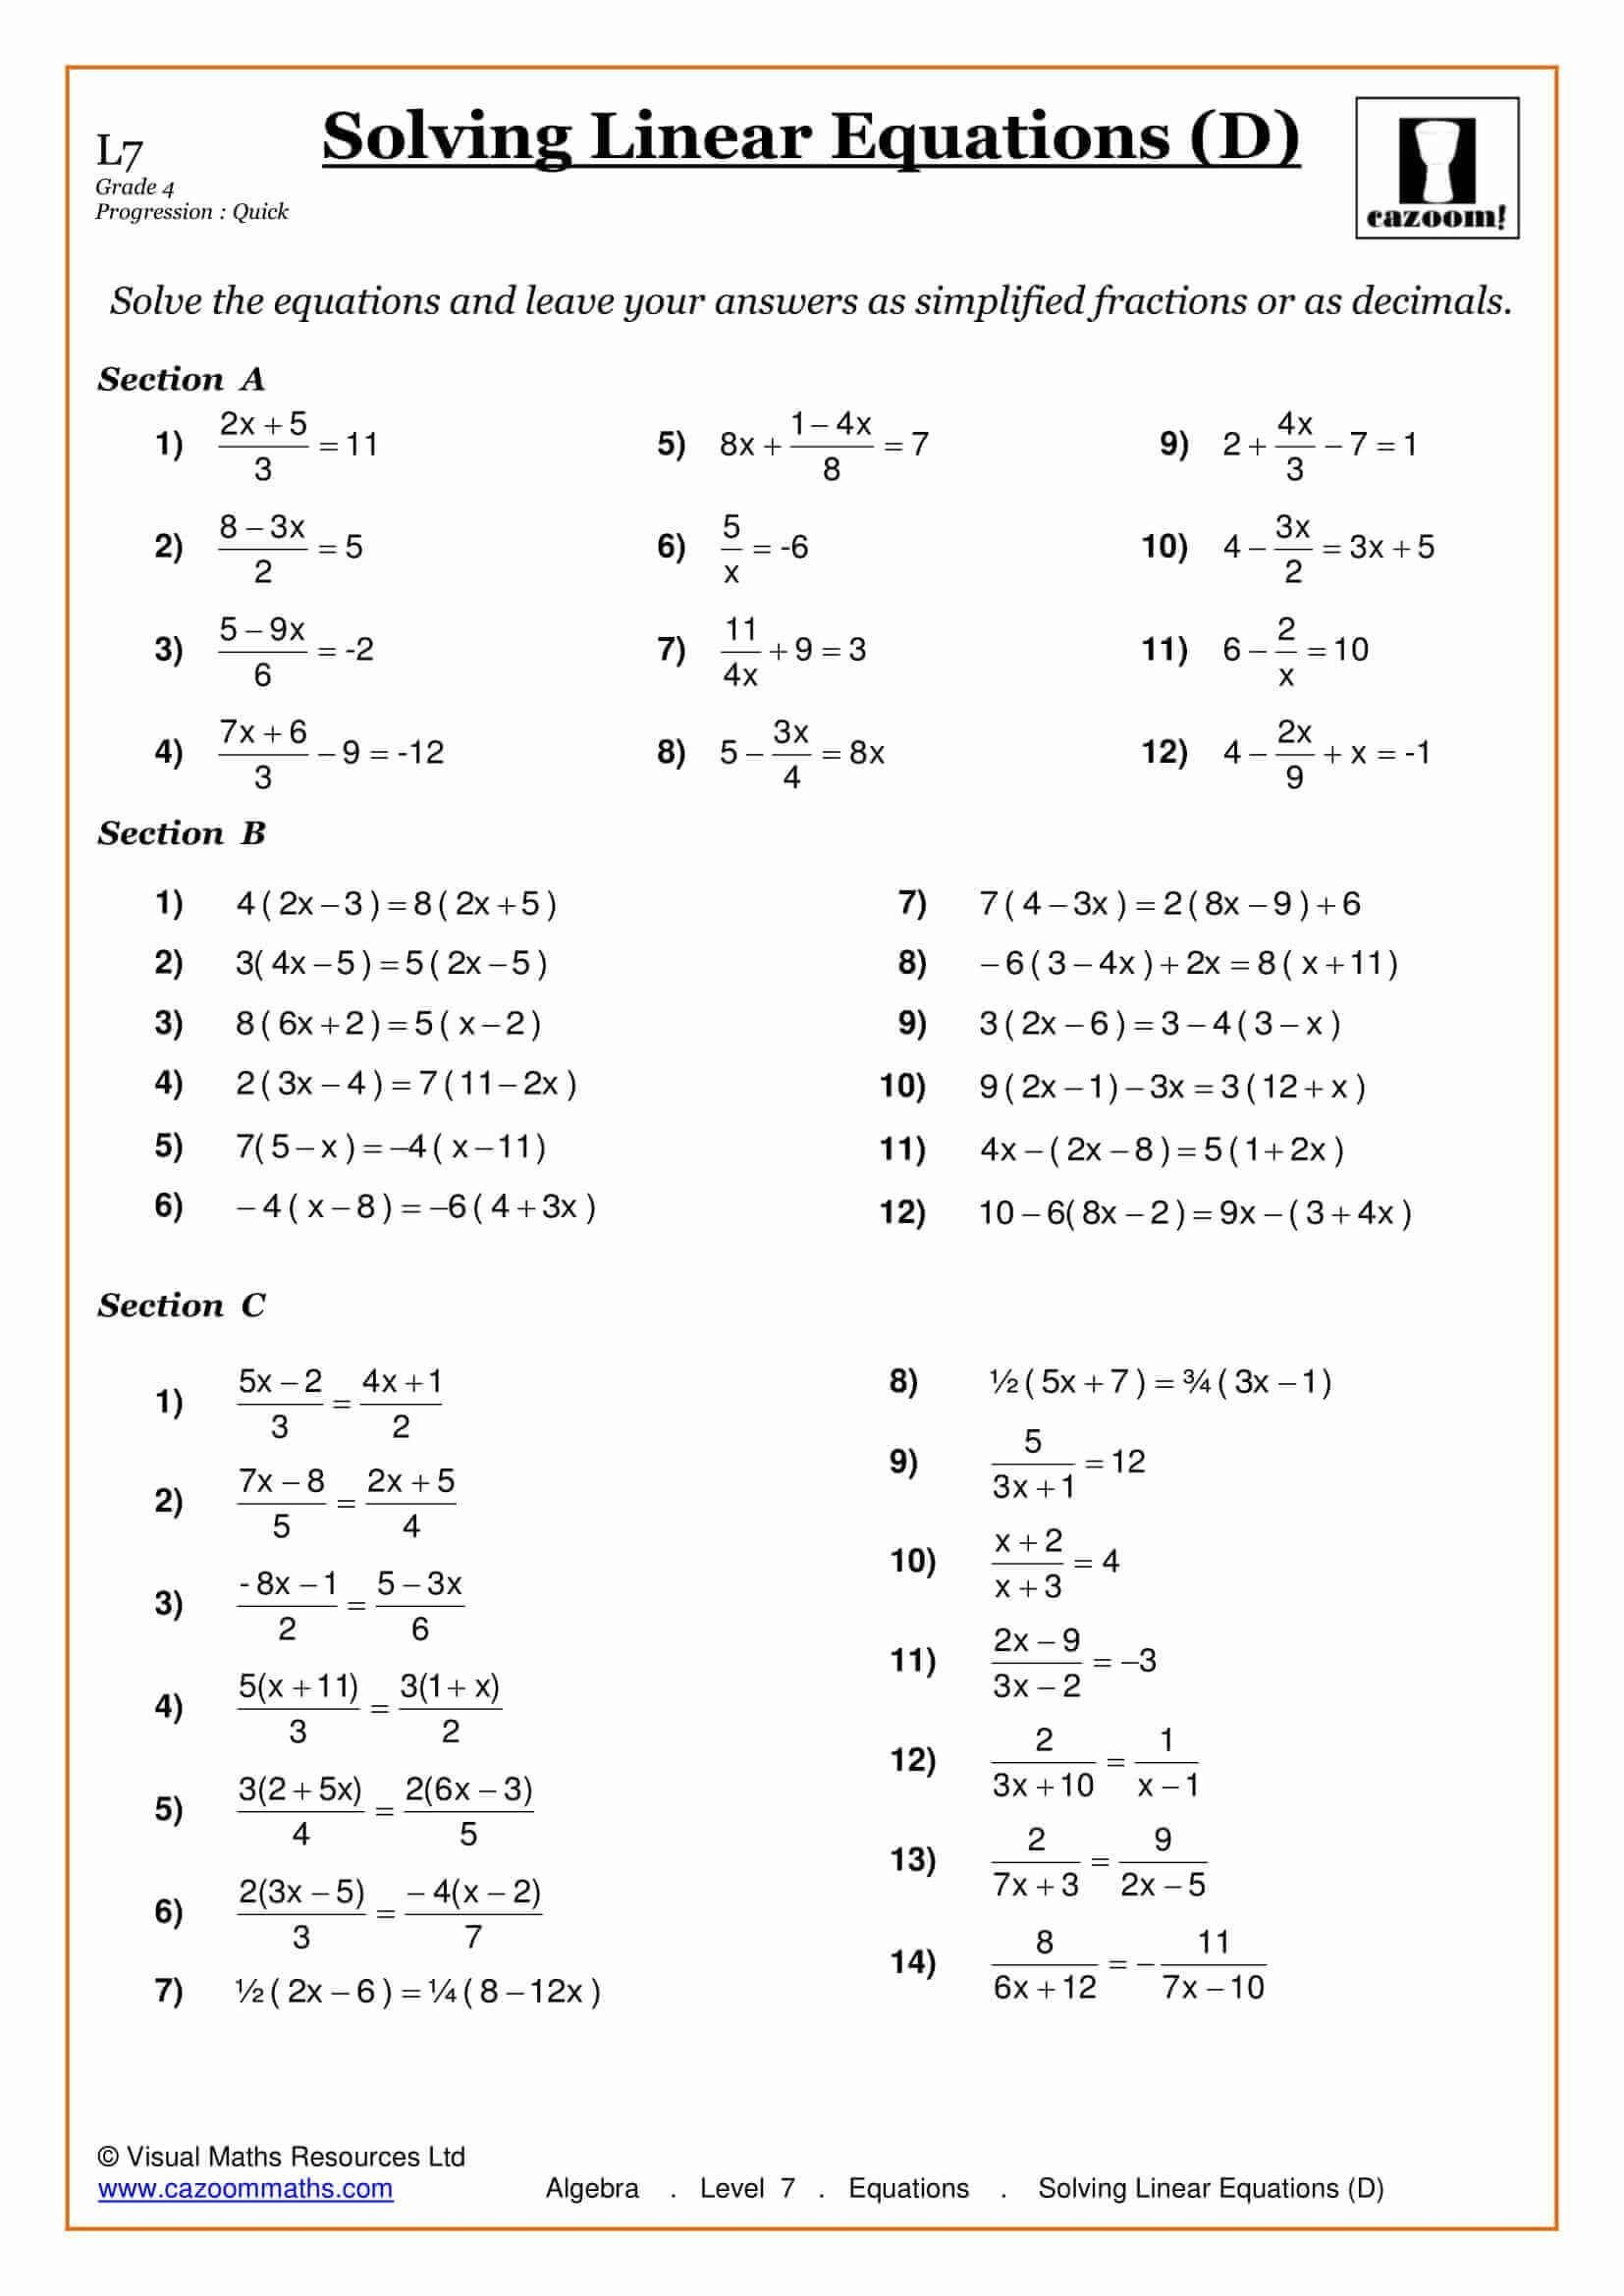 Solving Equations With Fractions Worksheet Solving Equations Maths Worksheet Algebra Worksheets Solving Equations Fractions Worksheets